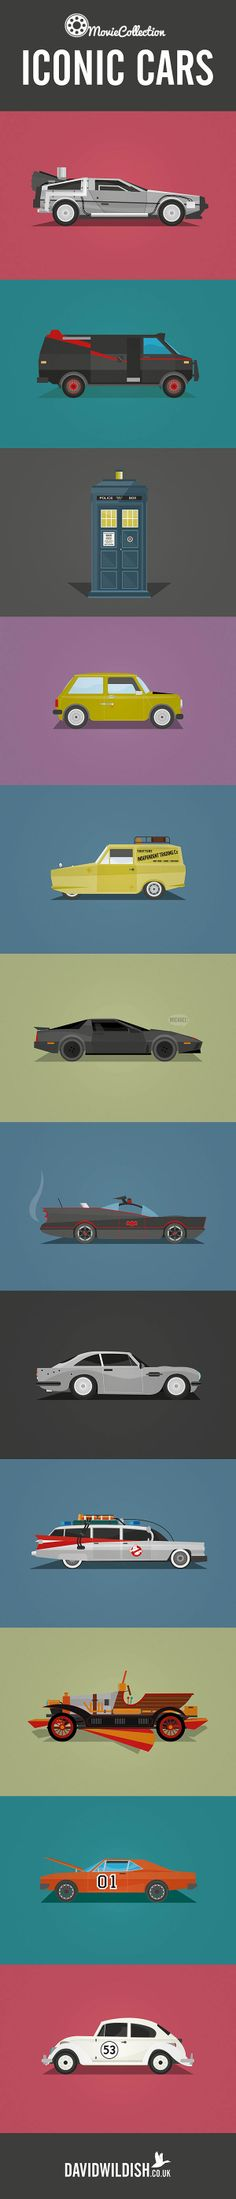 The ultimate collection of iconic #cars from both TV and the movies lovingly illustrated. Can name them all? Hit the pic to see...